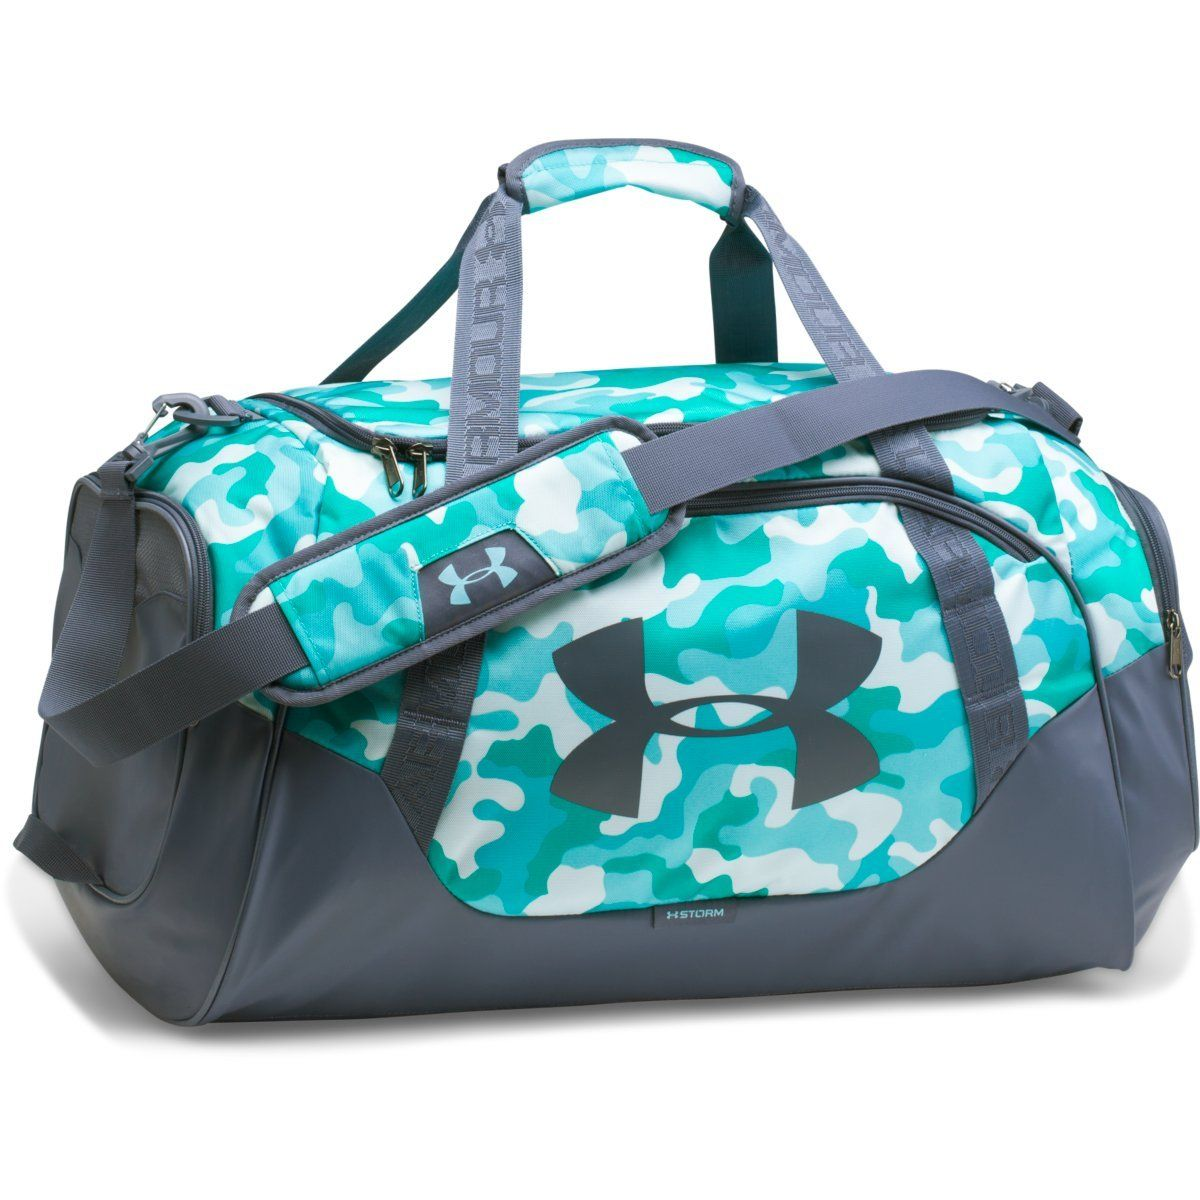 c08ebd72aa78 Under Armour Blue Infinity Apollo Grey Undeniable 3.0 Medium Duffle ...